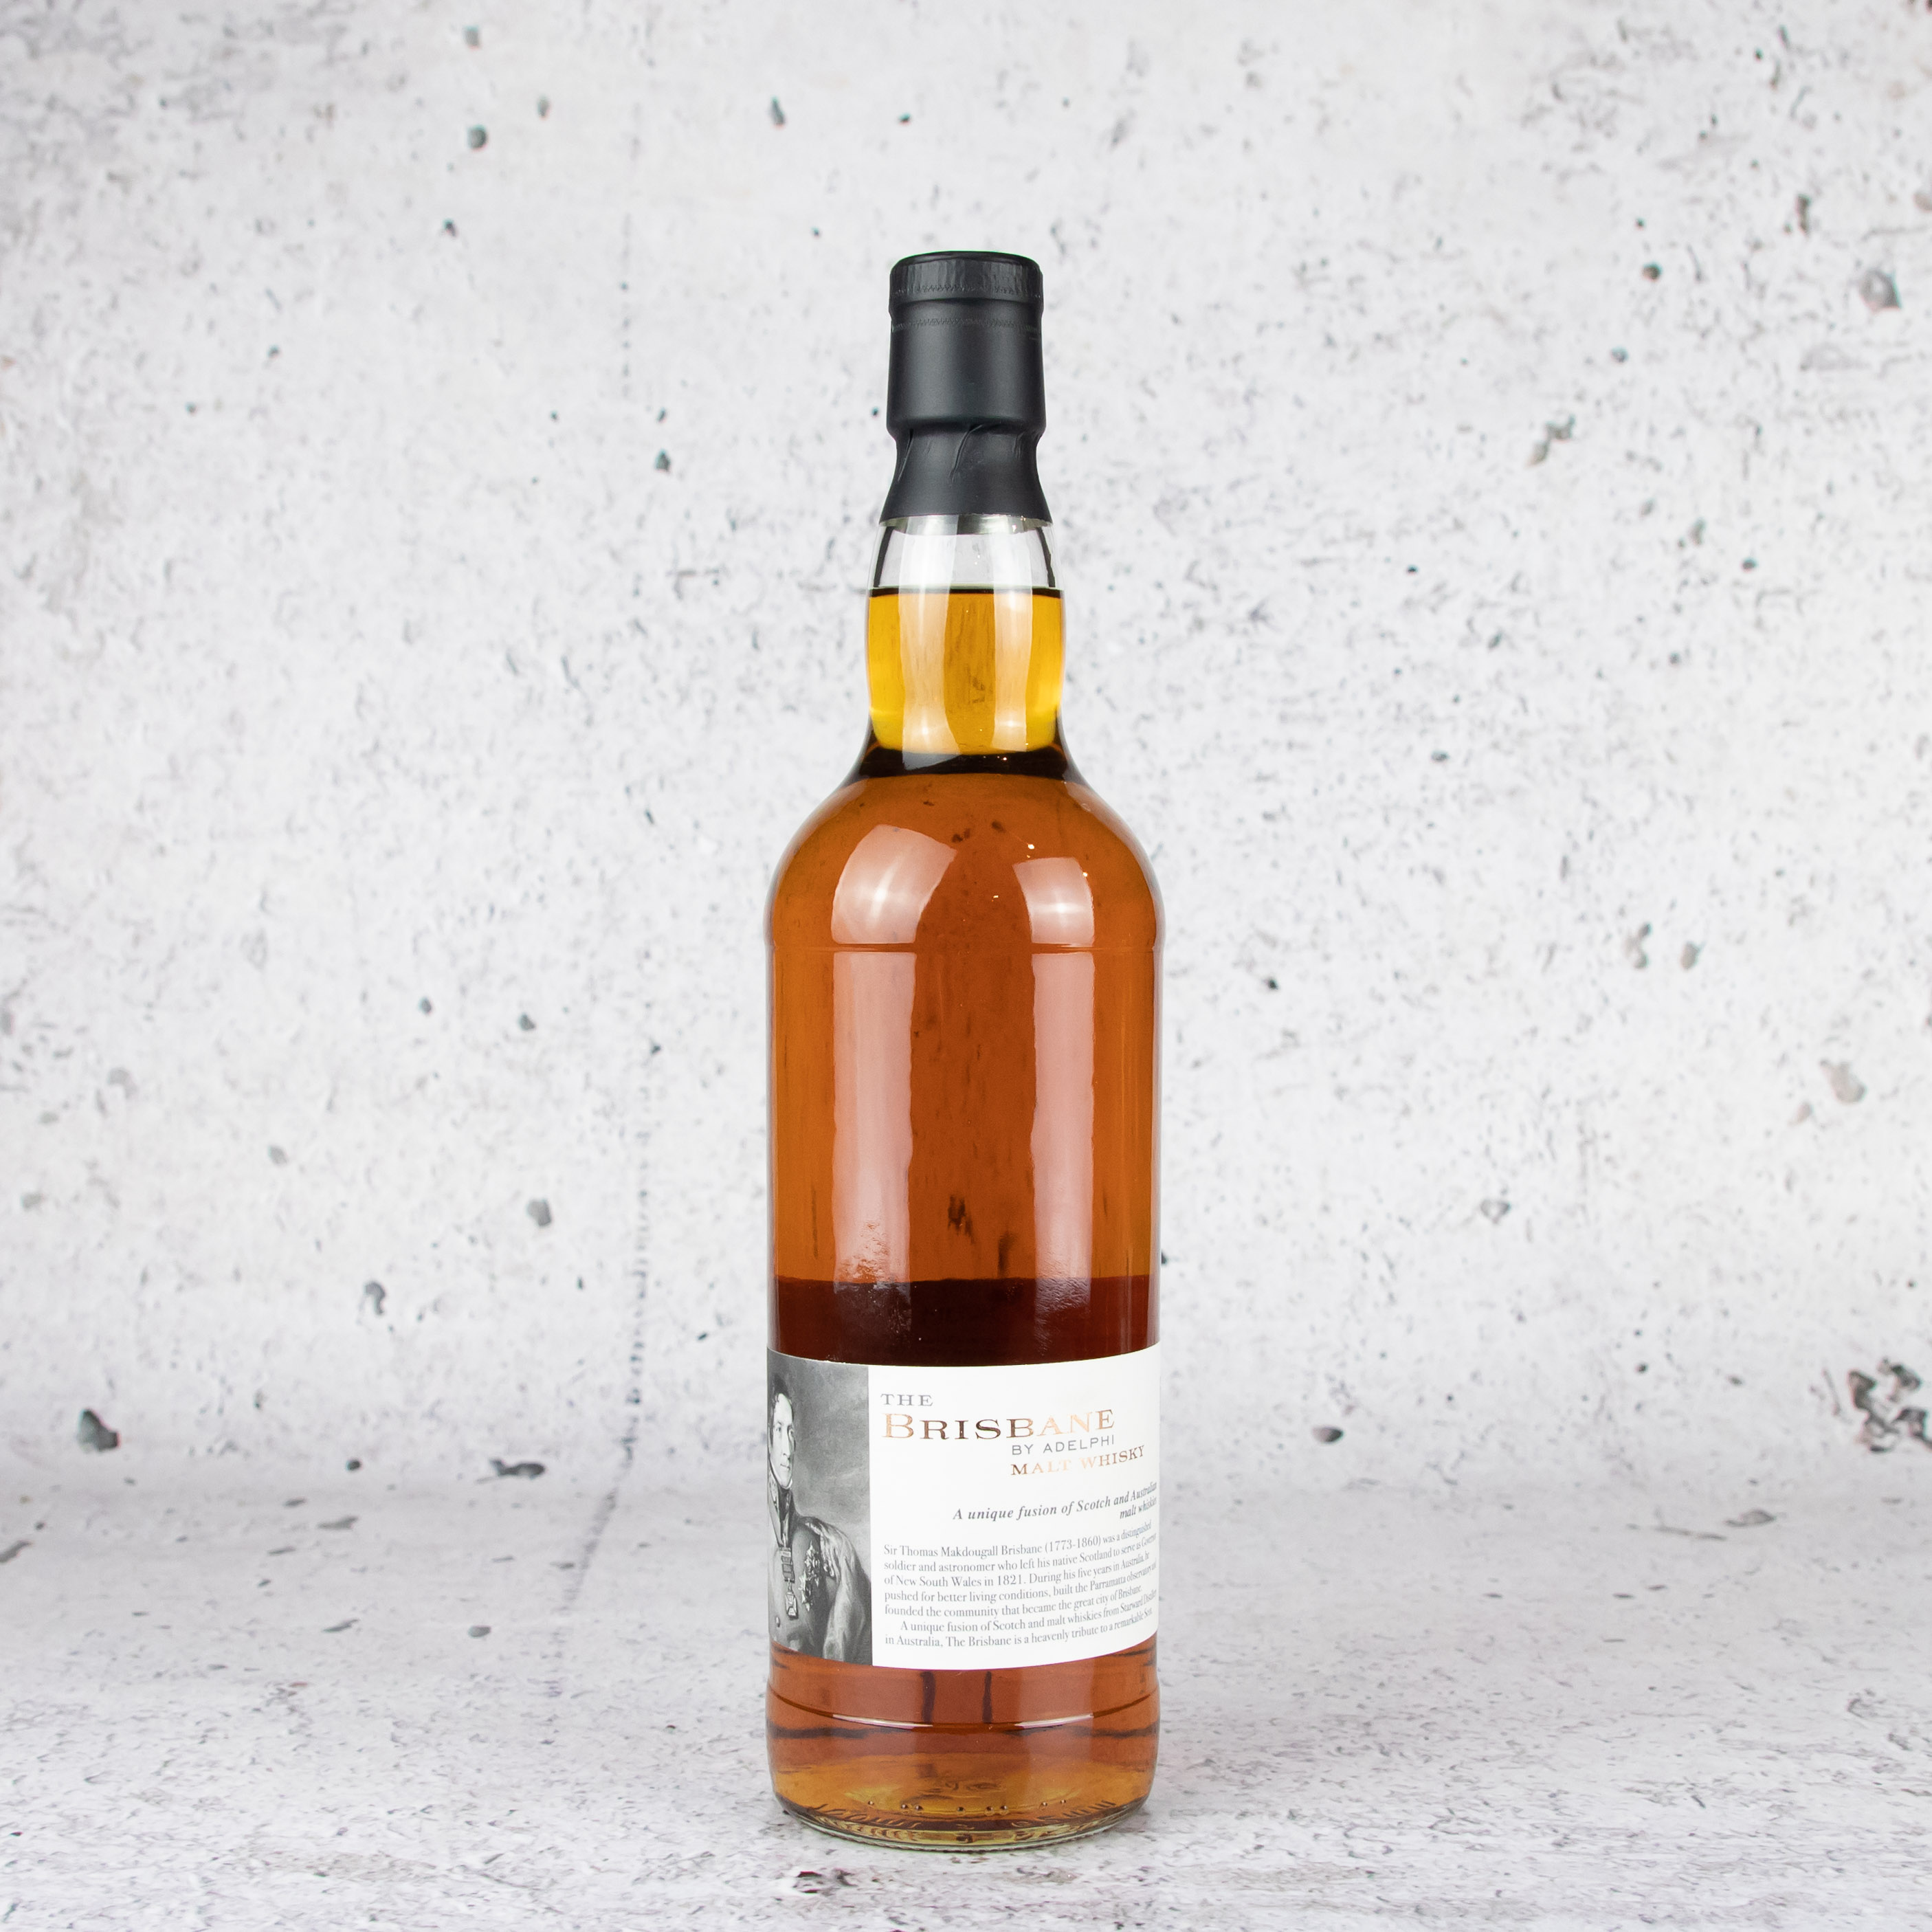 Adelphi The Brisbane 5 Y/O Fusion Malt Whisky